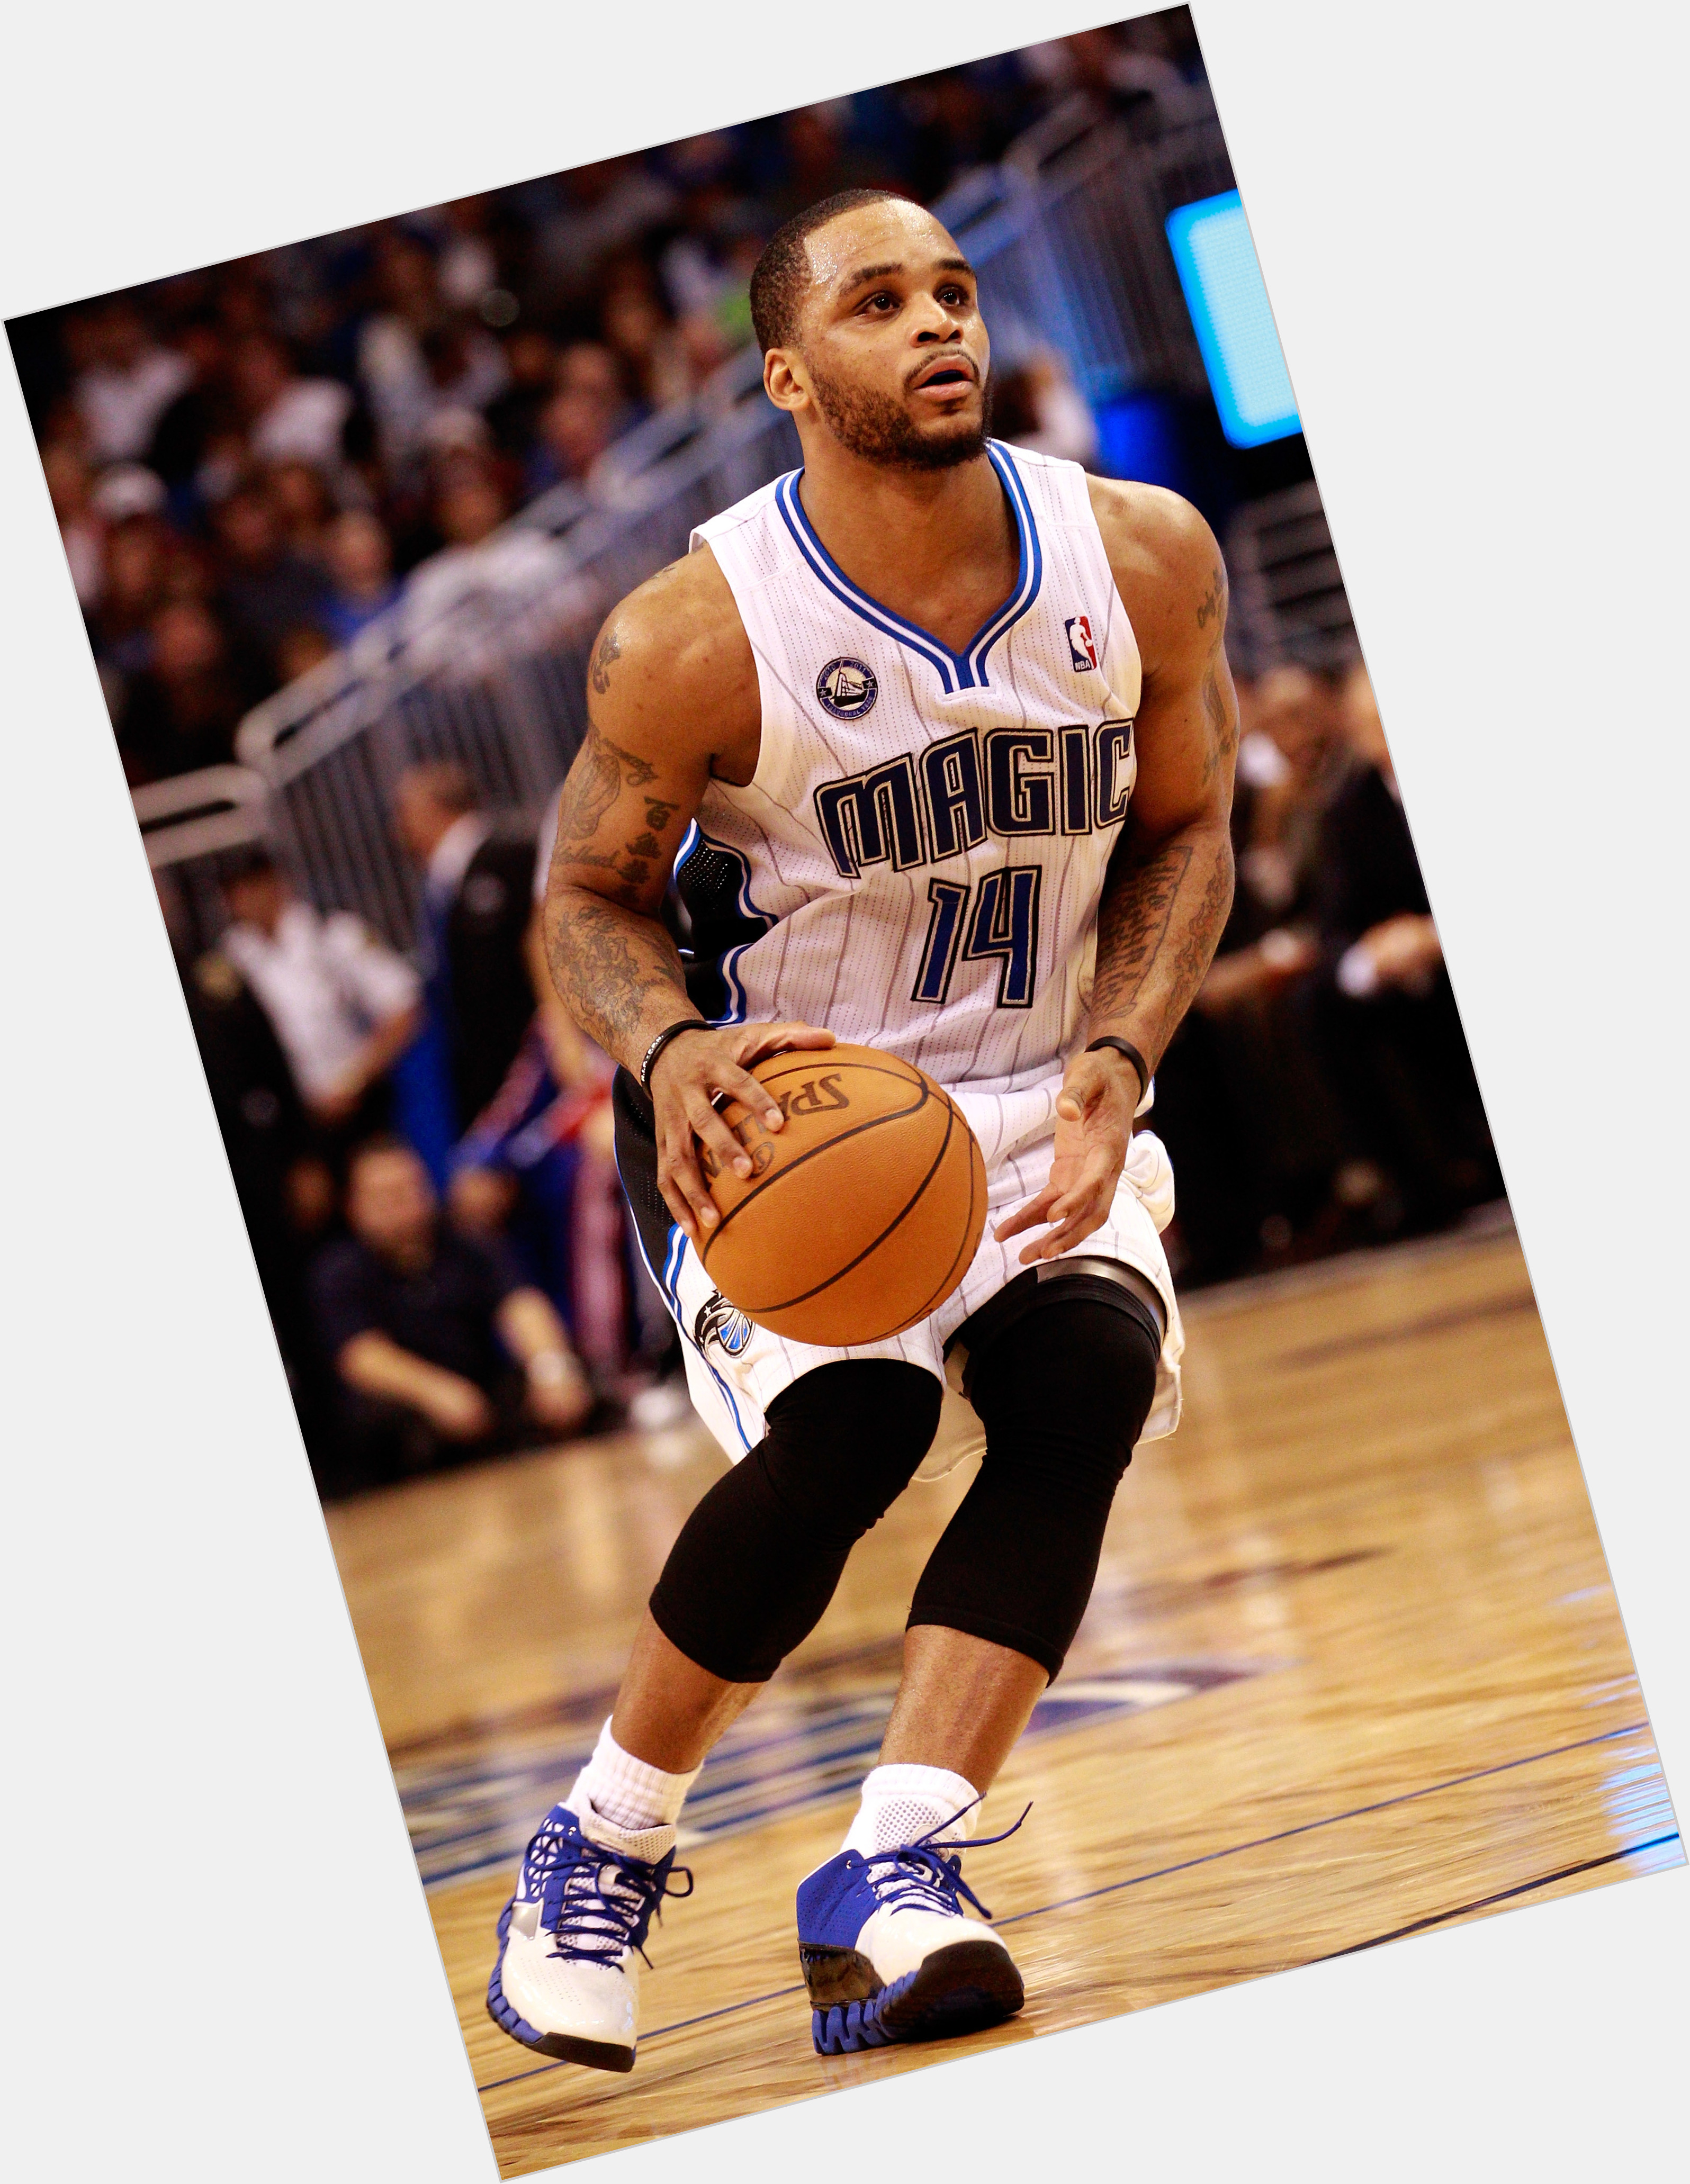 Jameer Nelson full body 3.jpg